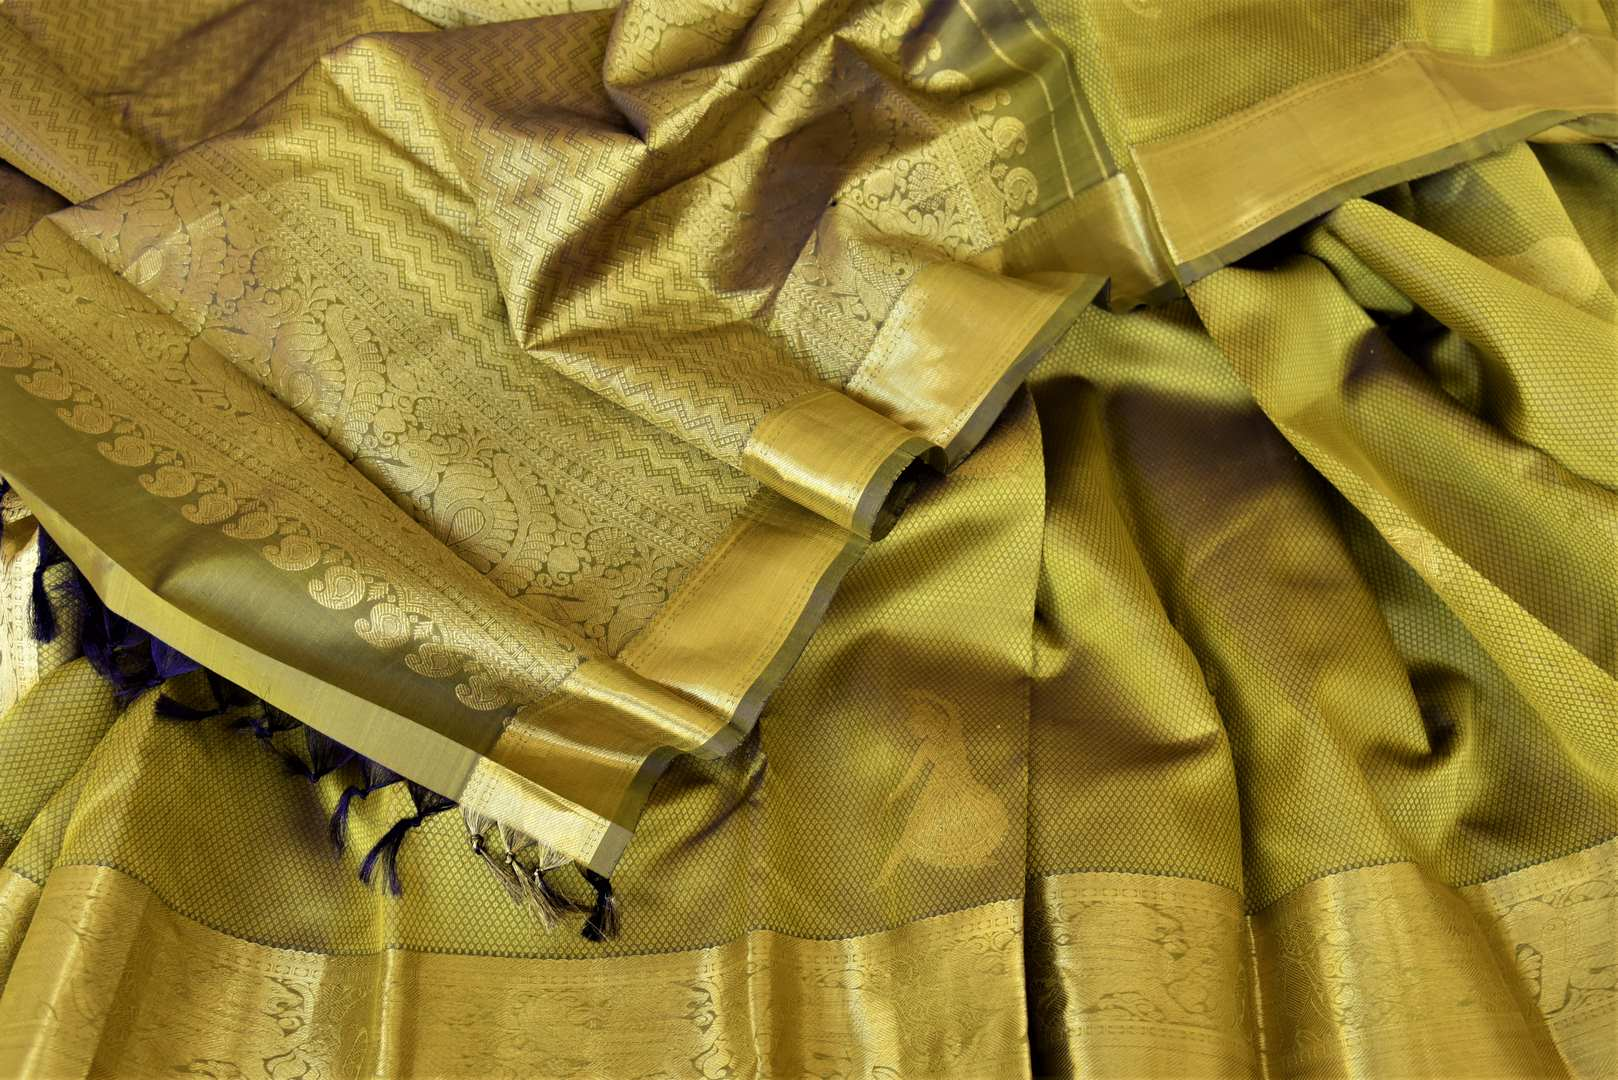 Shop mehendi green Kanjeevaram sari online in USA with golden zari border. Add spark to your festive style with beautiful Kanchipuram silk sarees in USA from Pure Elegance Indian fashion store.-details